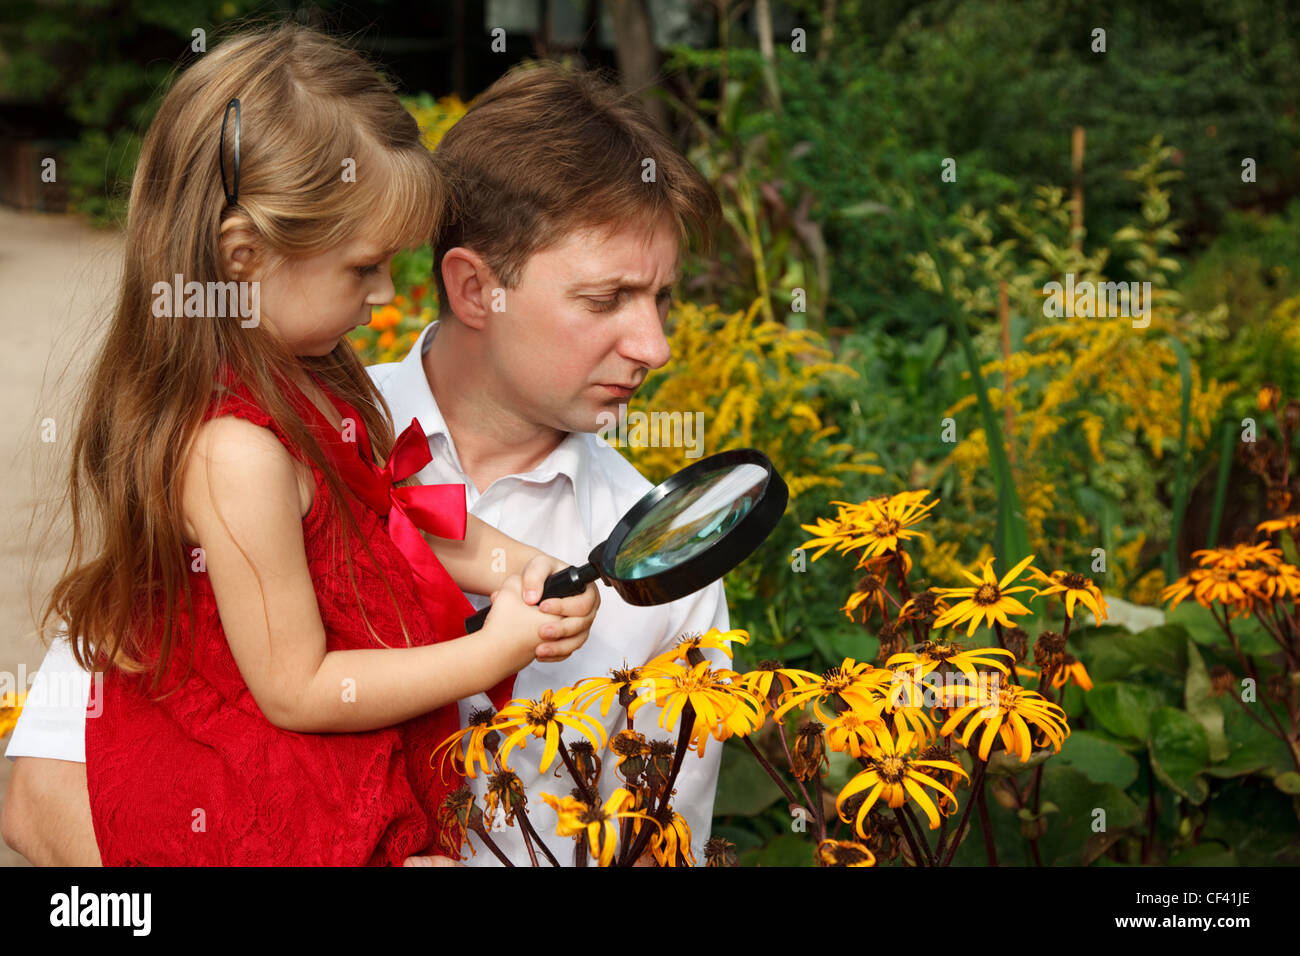 Little girl in red dress with father, considers plants through magnifying glass. - Stock Image